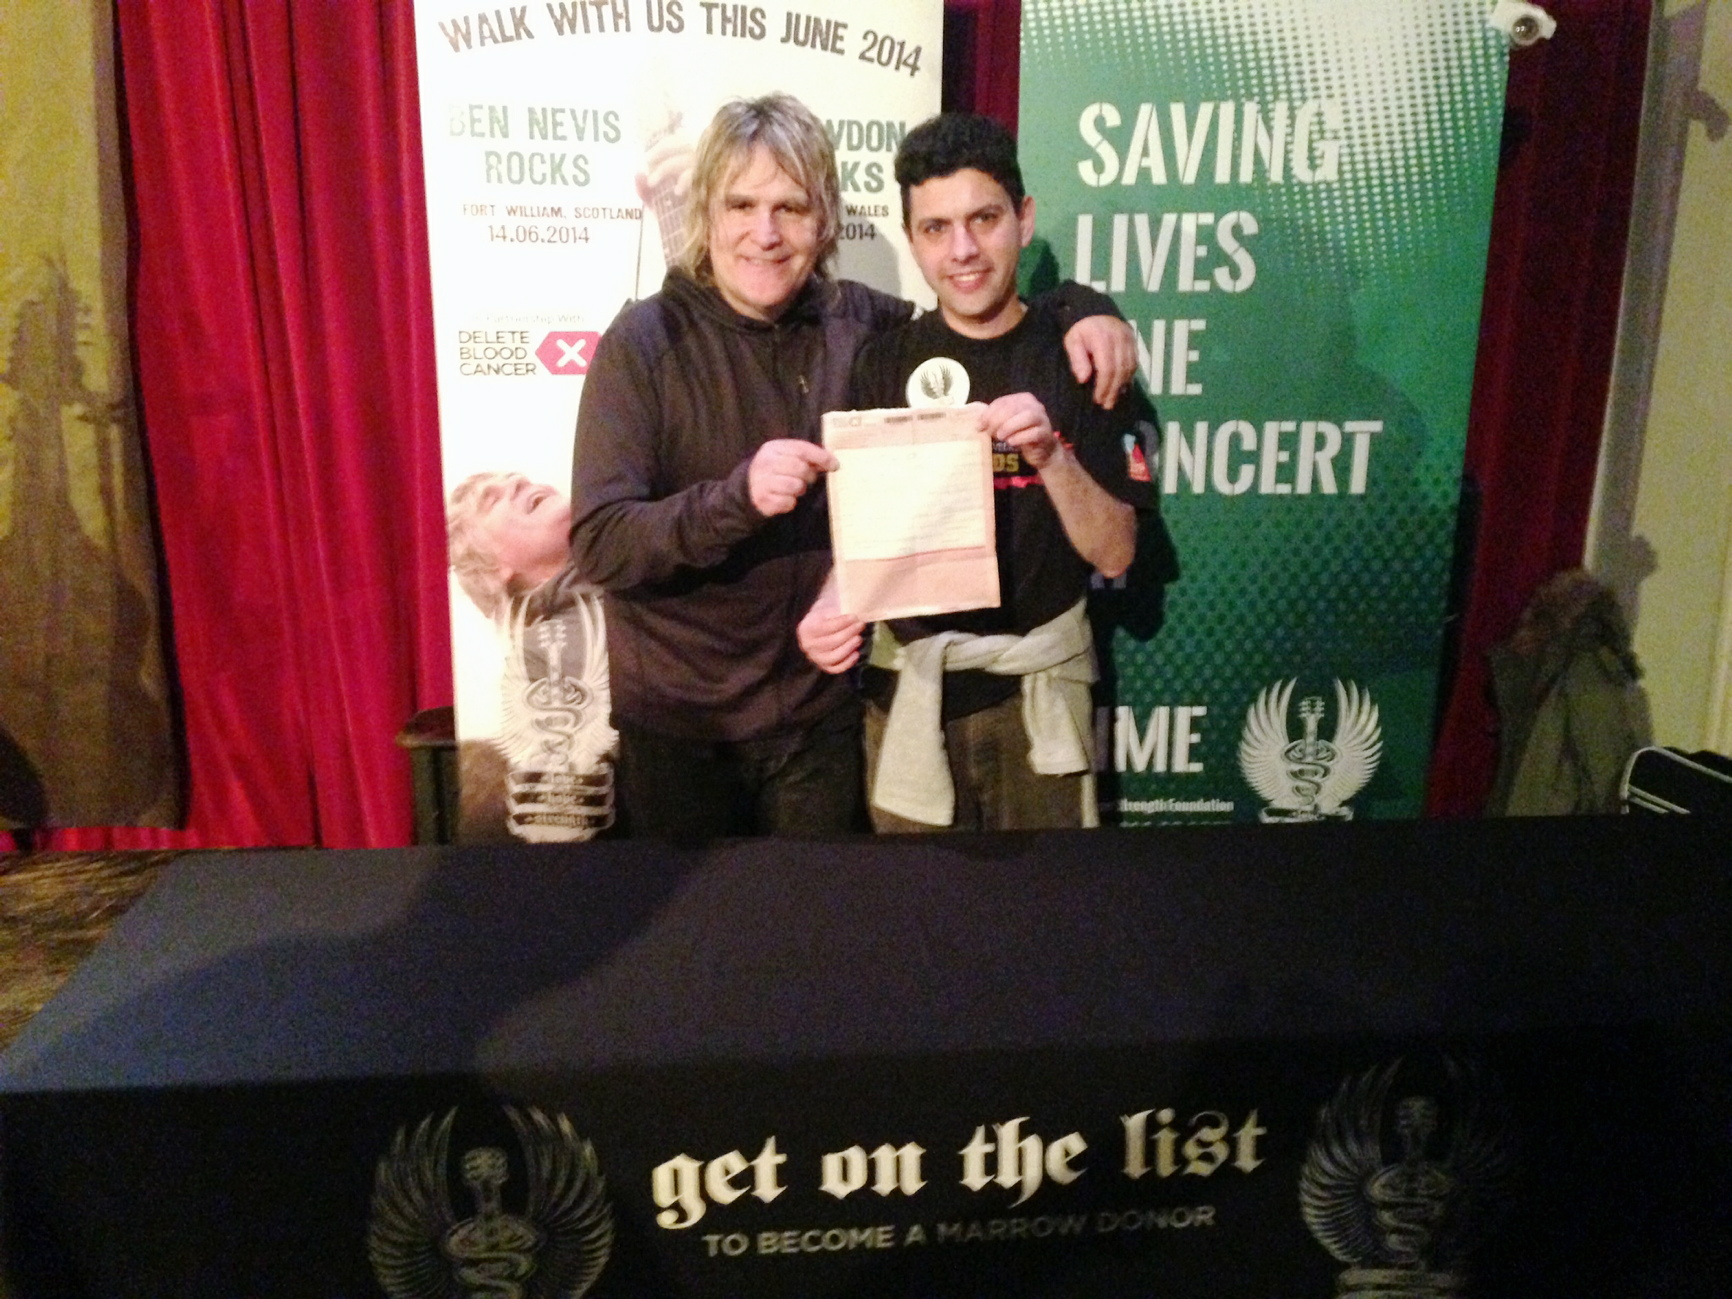 Mike Peters (left), frontman from The Alarm, recruiting bone marrow and organ donors at his sell-out Otley show, with Councillor Alex Sobel